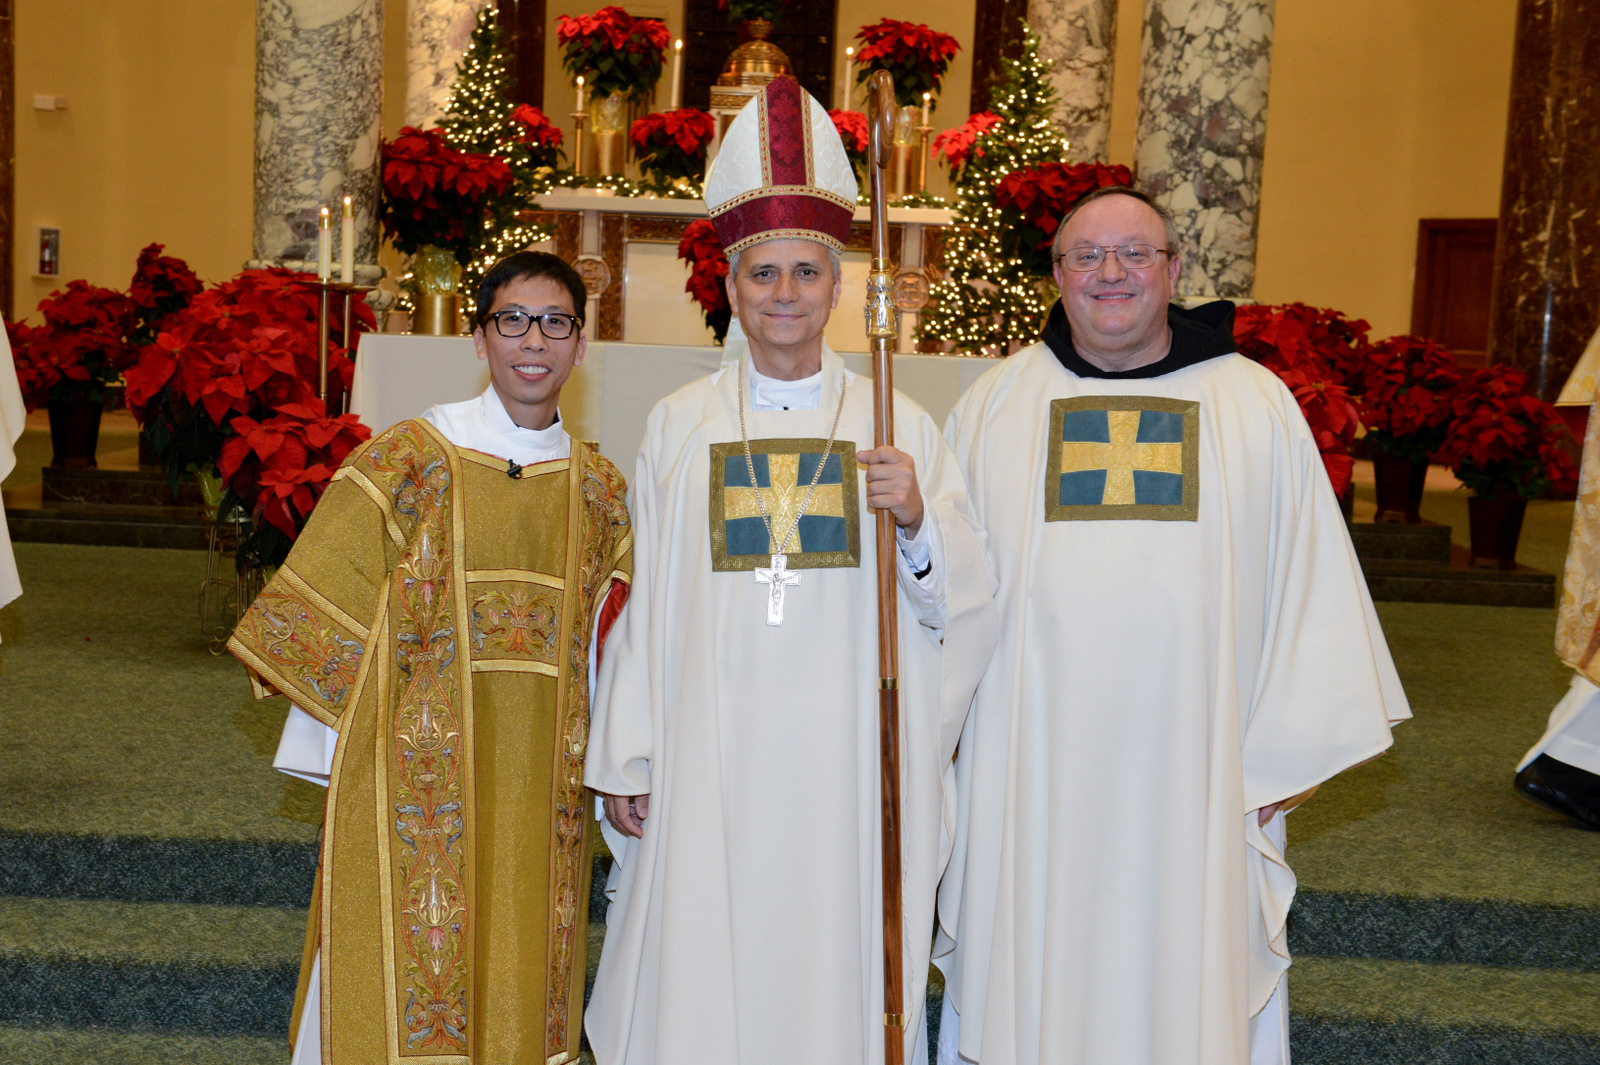 Deacon Richie Mercado, O.S.A. (left) will be ordained to the Priesthood on June 10, 2016